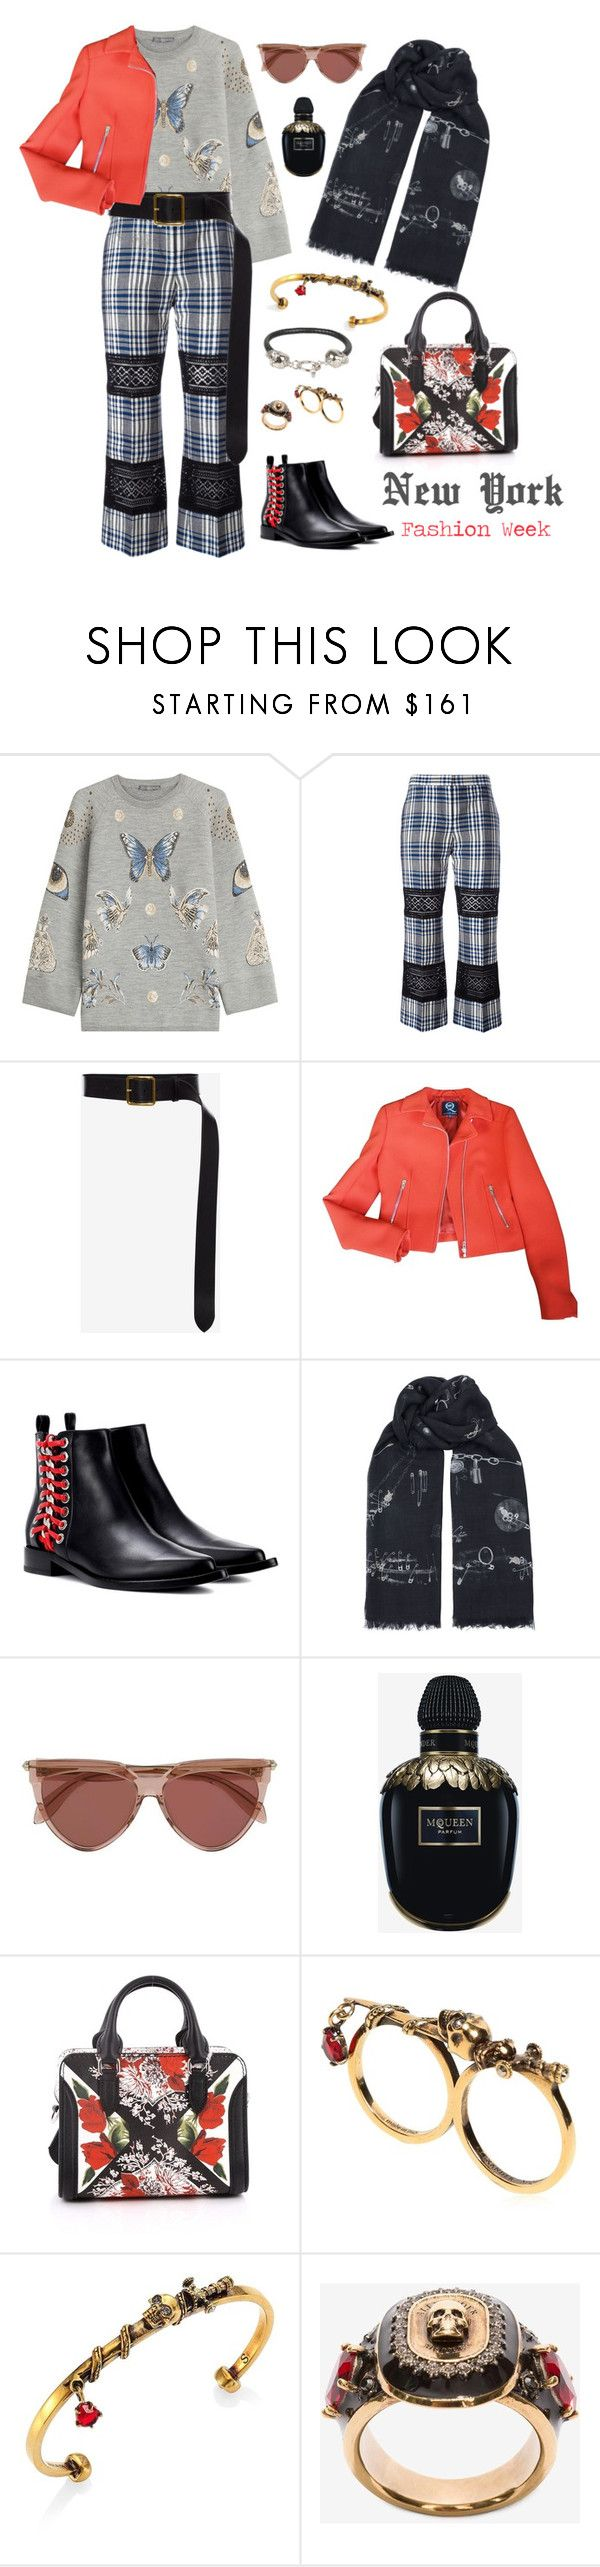 """""""Walk On Alex!"""" by afifahafifa on Polyvore featuring Alexander McQueen, NYFW and AlexanderMcQueen"""